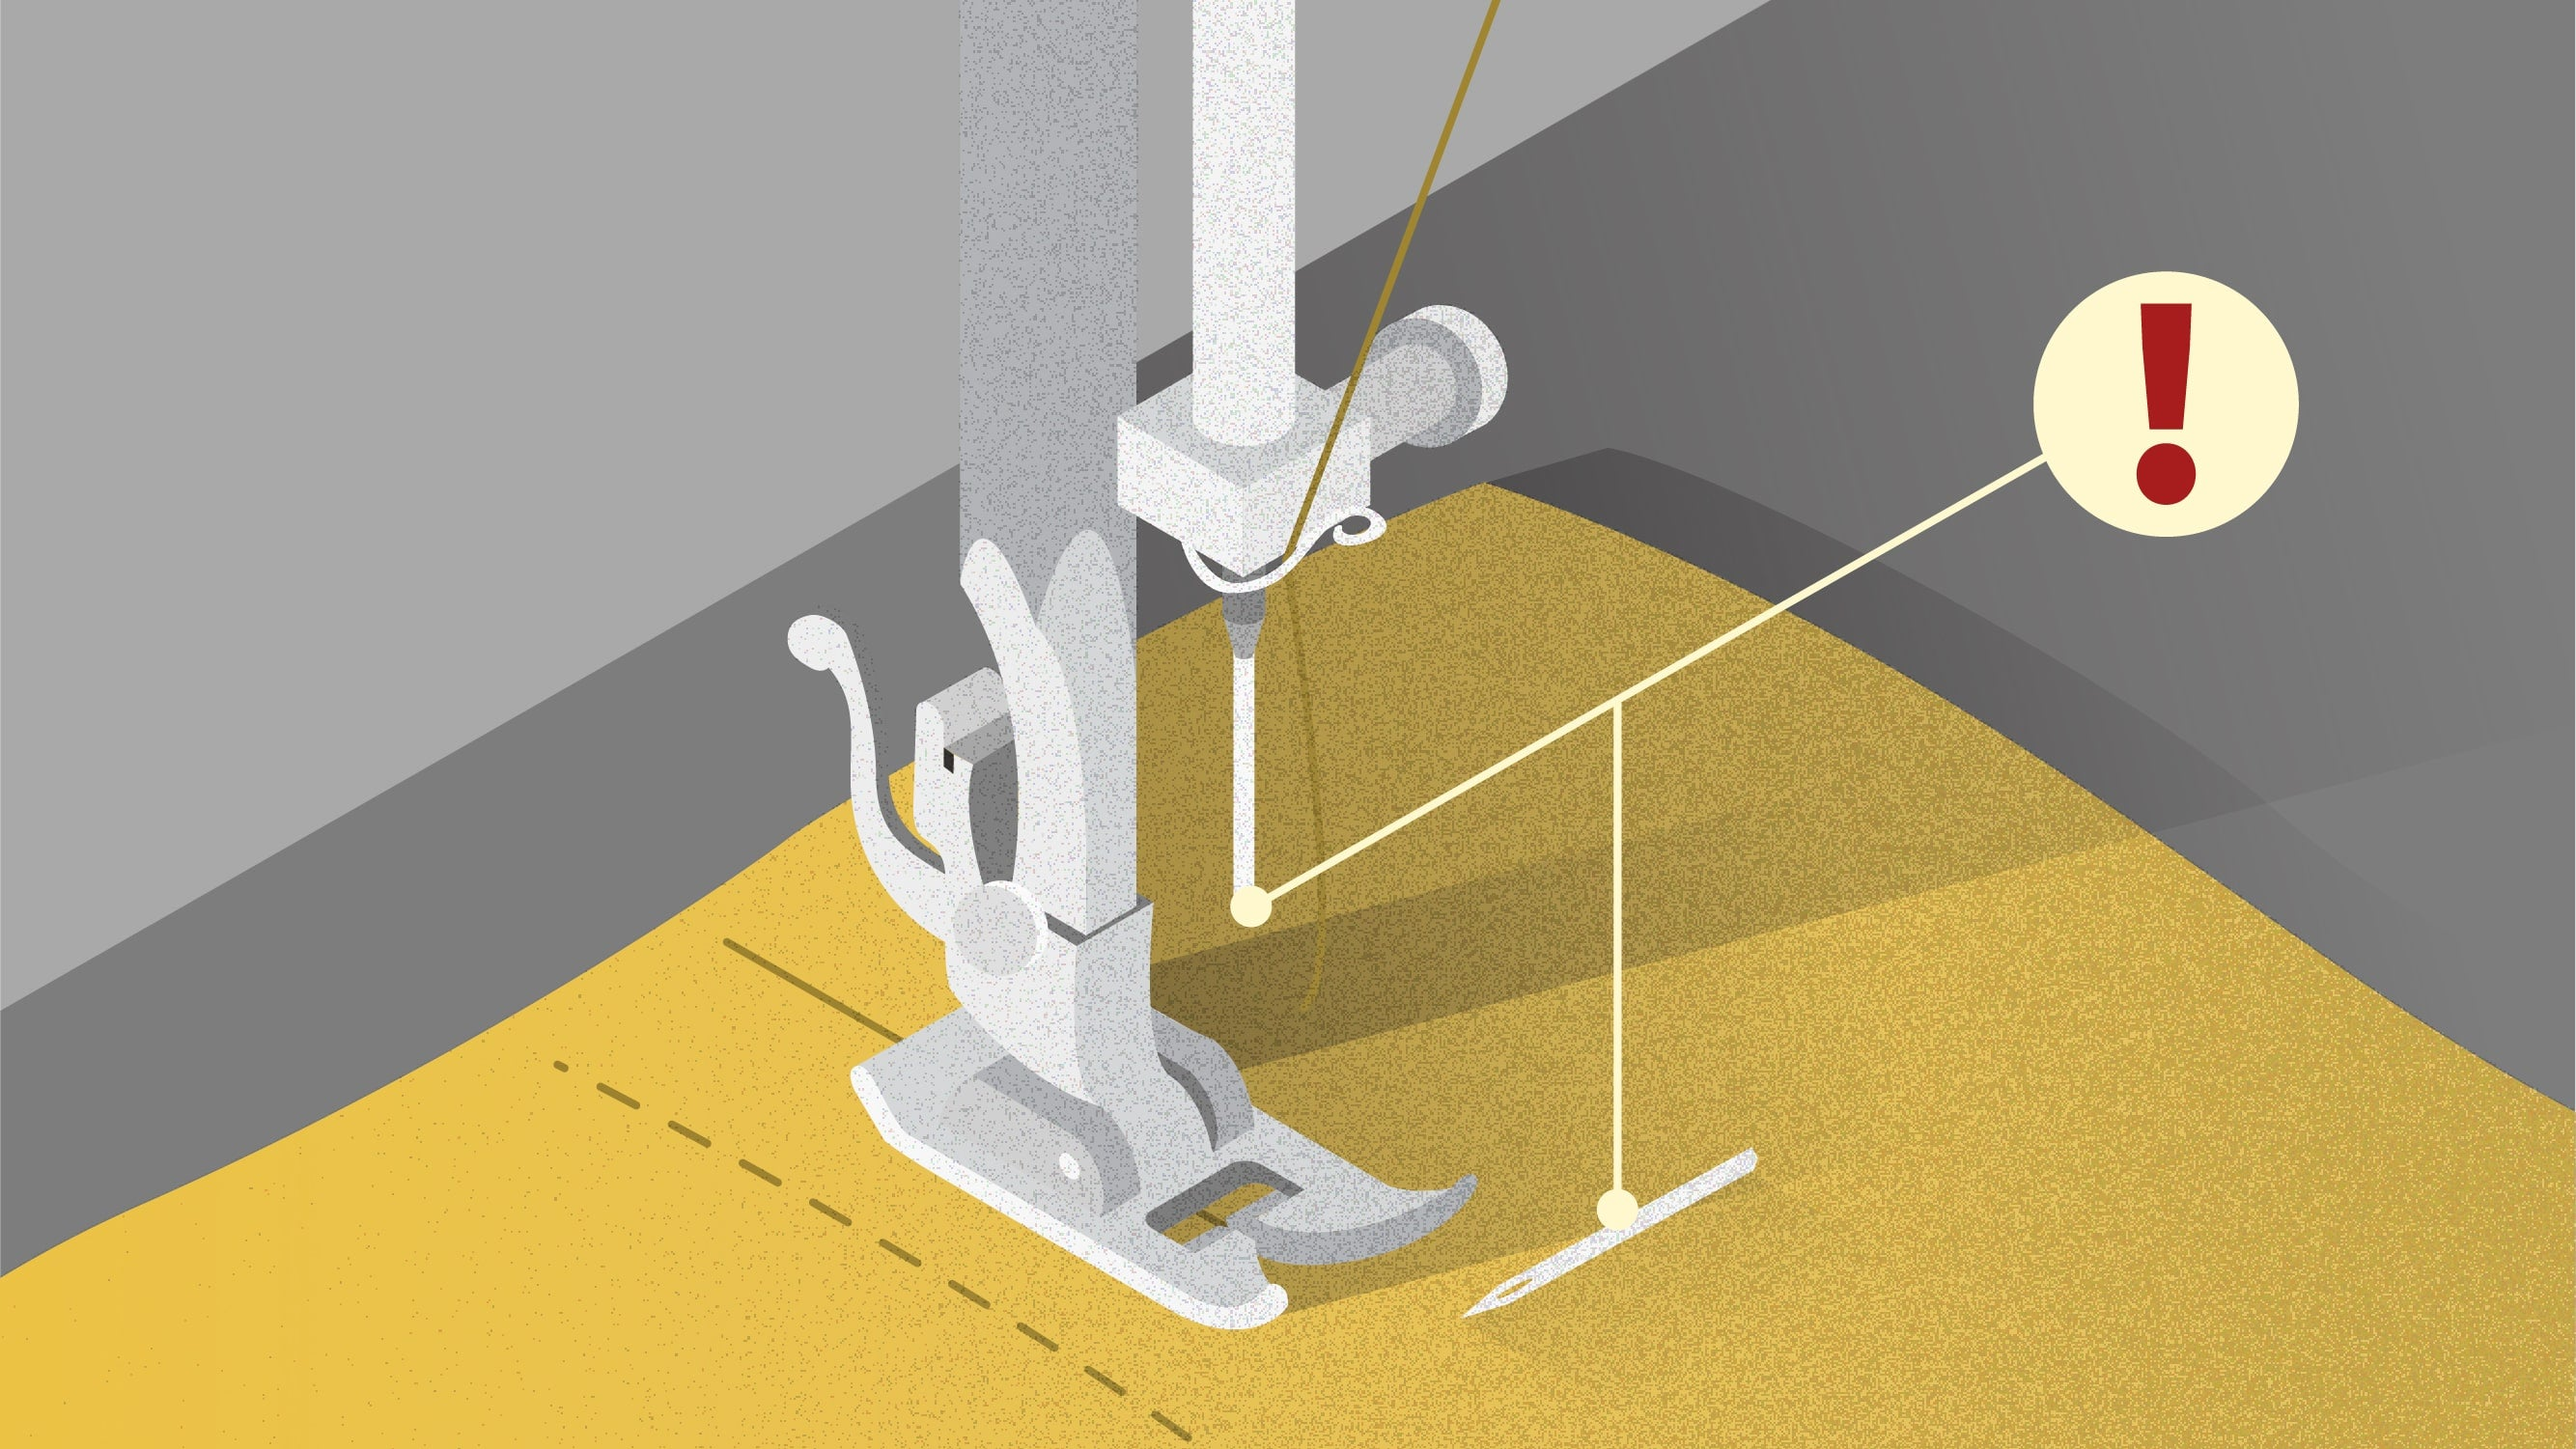 Illustration of sewing machine needle breaks when sewing | Sewing tutorial © Singer® Hong Kong